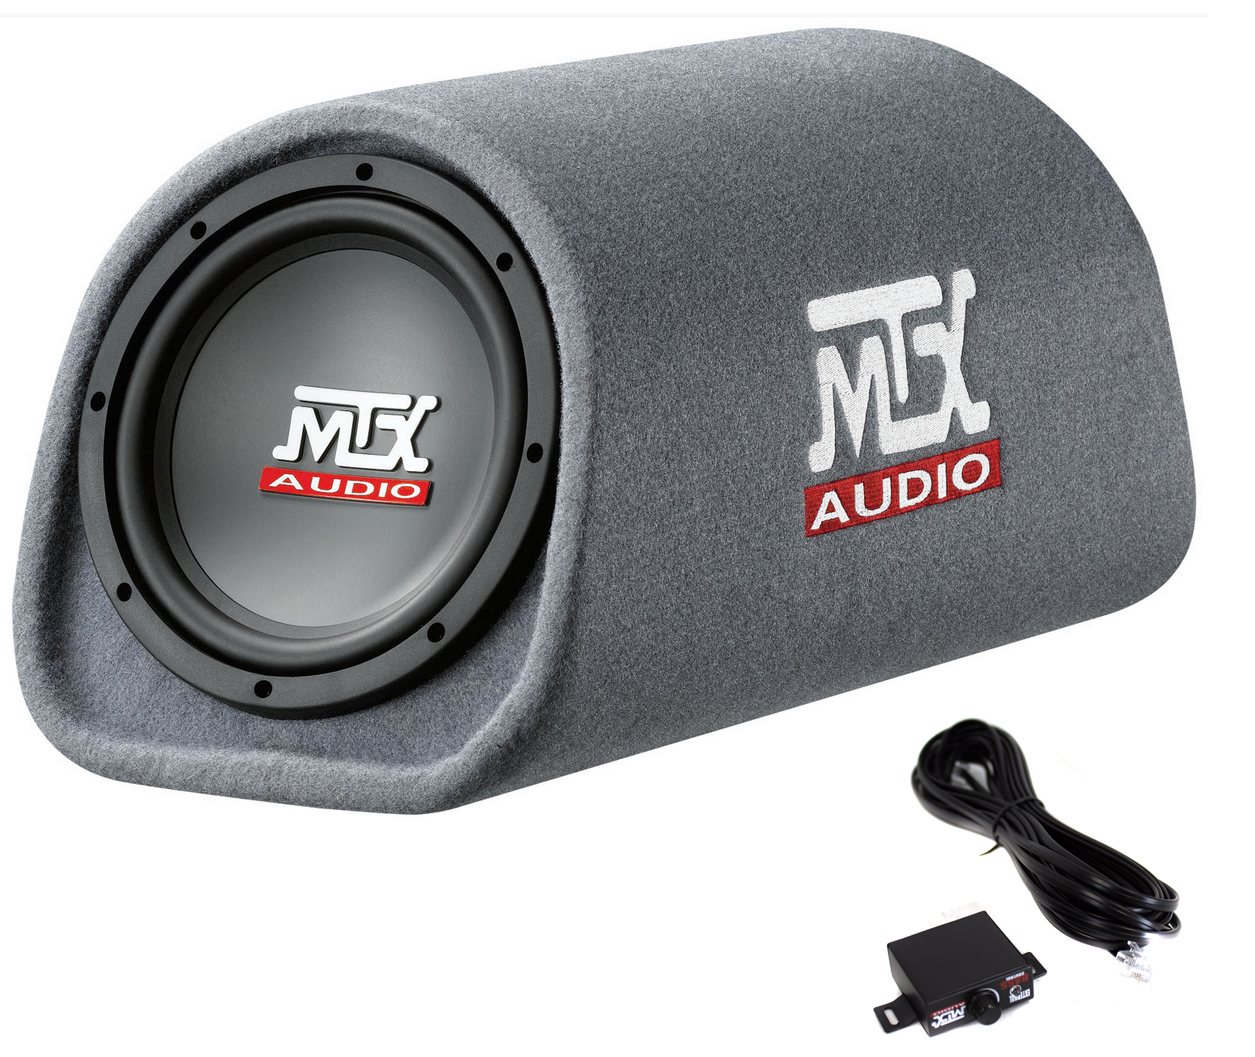 Car Vehicle Electronics Audio Packages Amplifiers Speakers Stereo Kit 800w Sub 500w 2 Channel Amplifier Capacitor Wiring Accessories And More Mtx